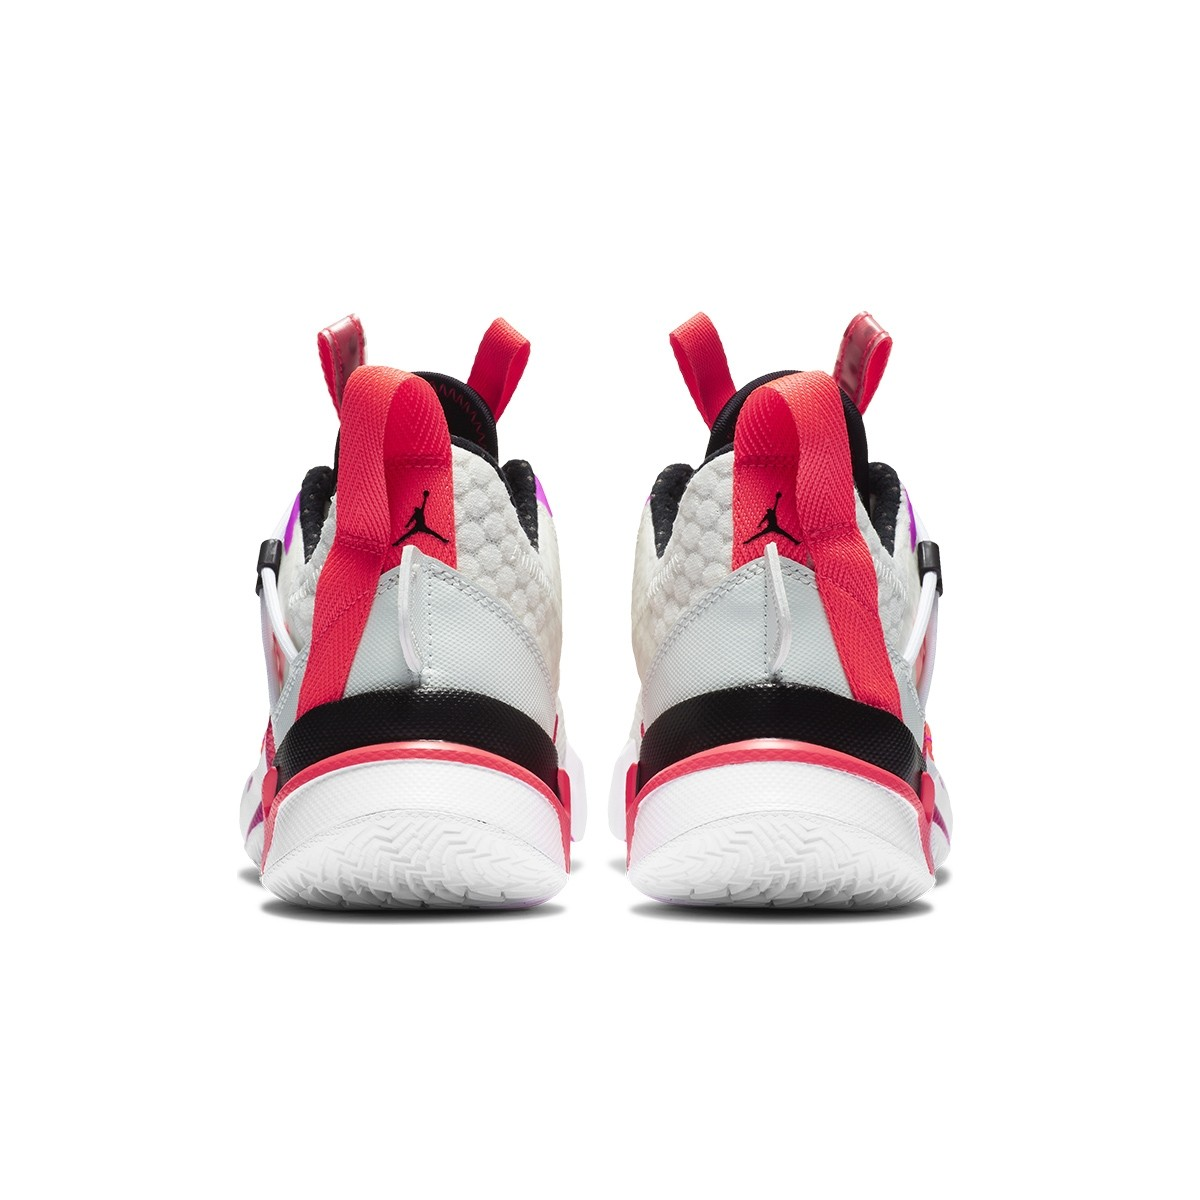 Jordan Why Not Zer0.3 GS 'Flash Crimson'-CN8107-101Jordan Why Not Zer0.3 GS 'Flash Crimson'-CN8107-101